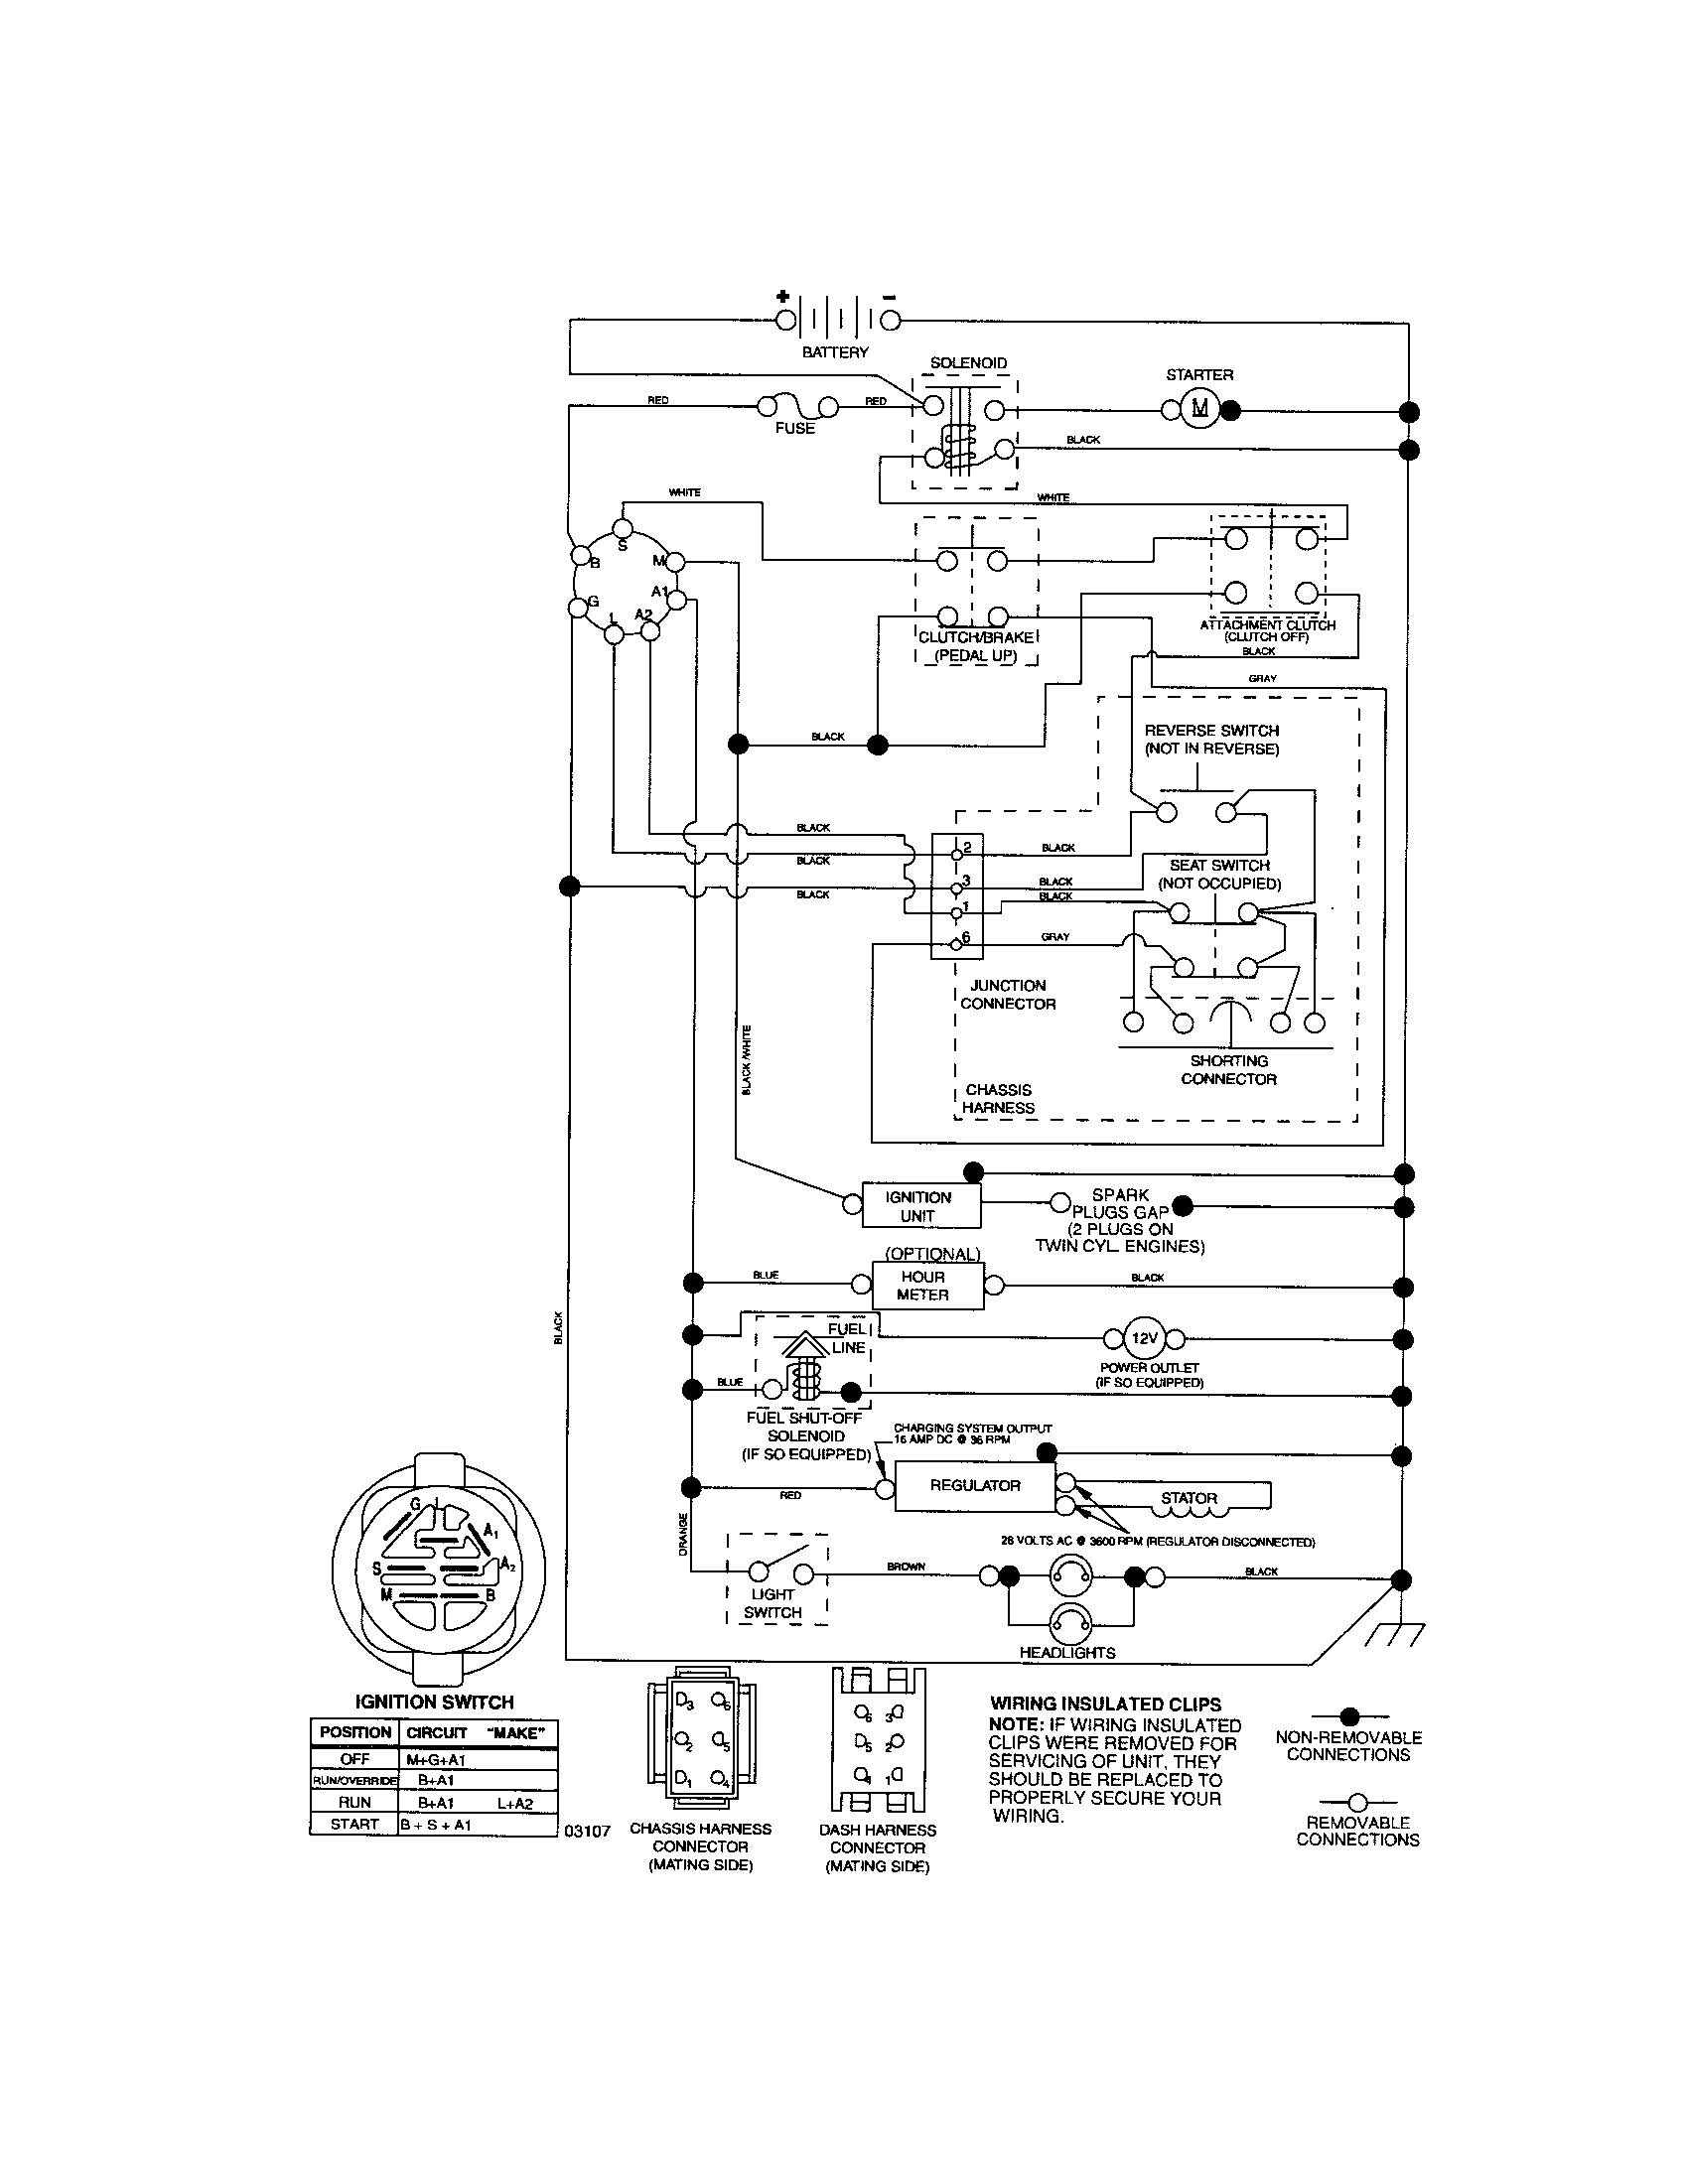 6af5f1447fd13c8443376822ddc1e105 riding lawn mower wiring diagram,Wiring Diagram For Toro Riding Mower